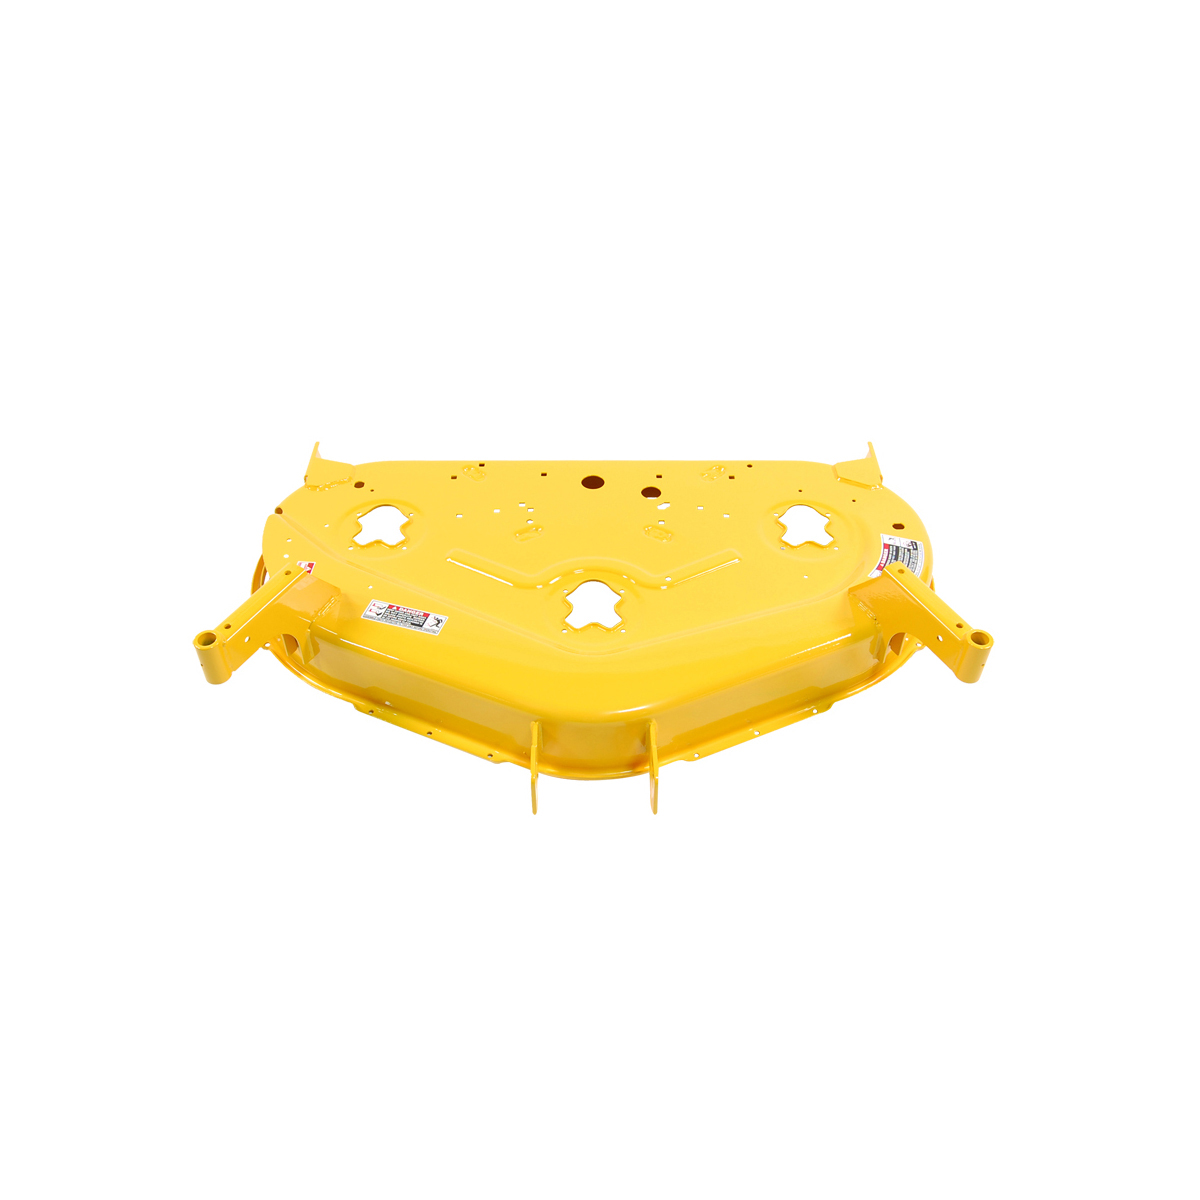 deck shell (44 inch) yellow-99 903-04270-0716